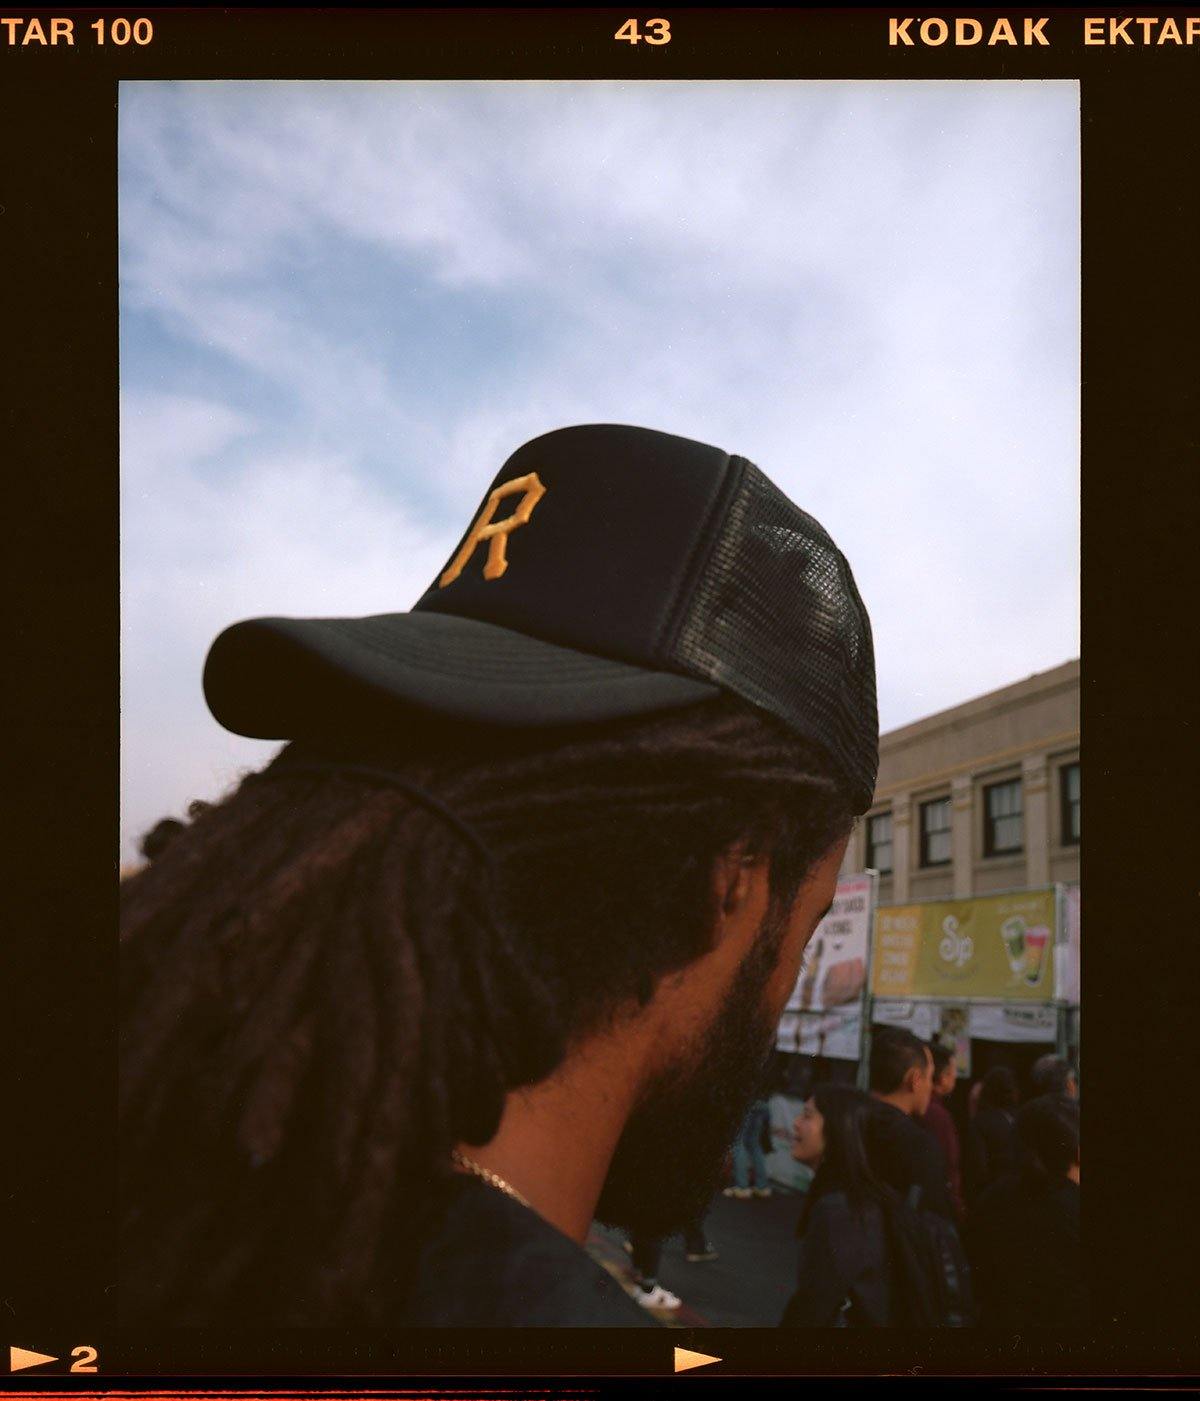 https://cantbuyrespect.myshopify.com/products/can-t-buy-respect-parker-hat